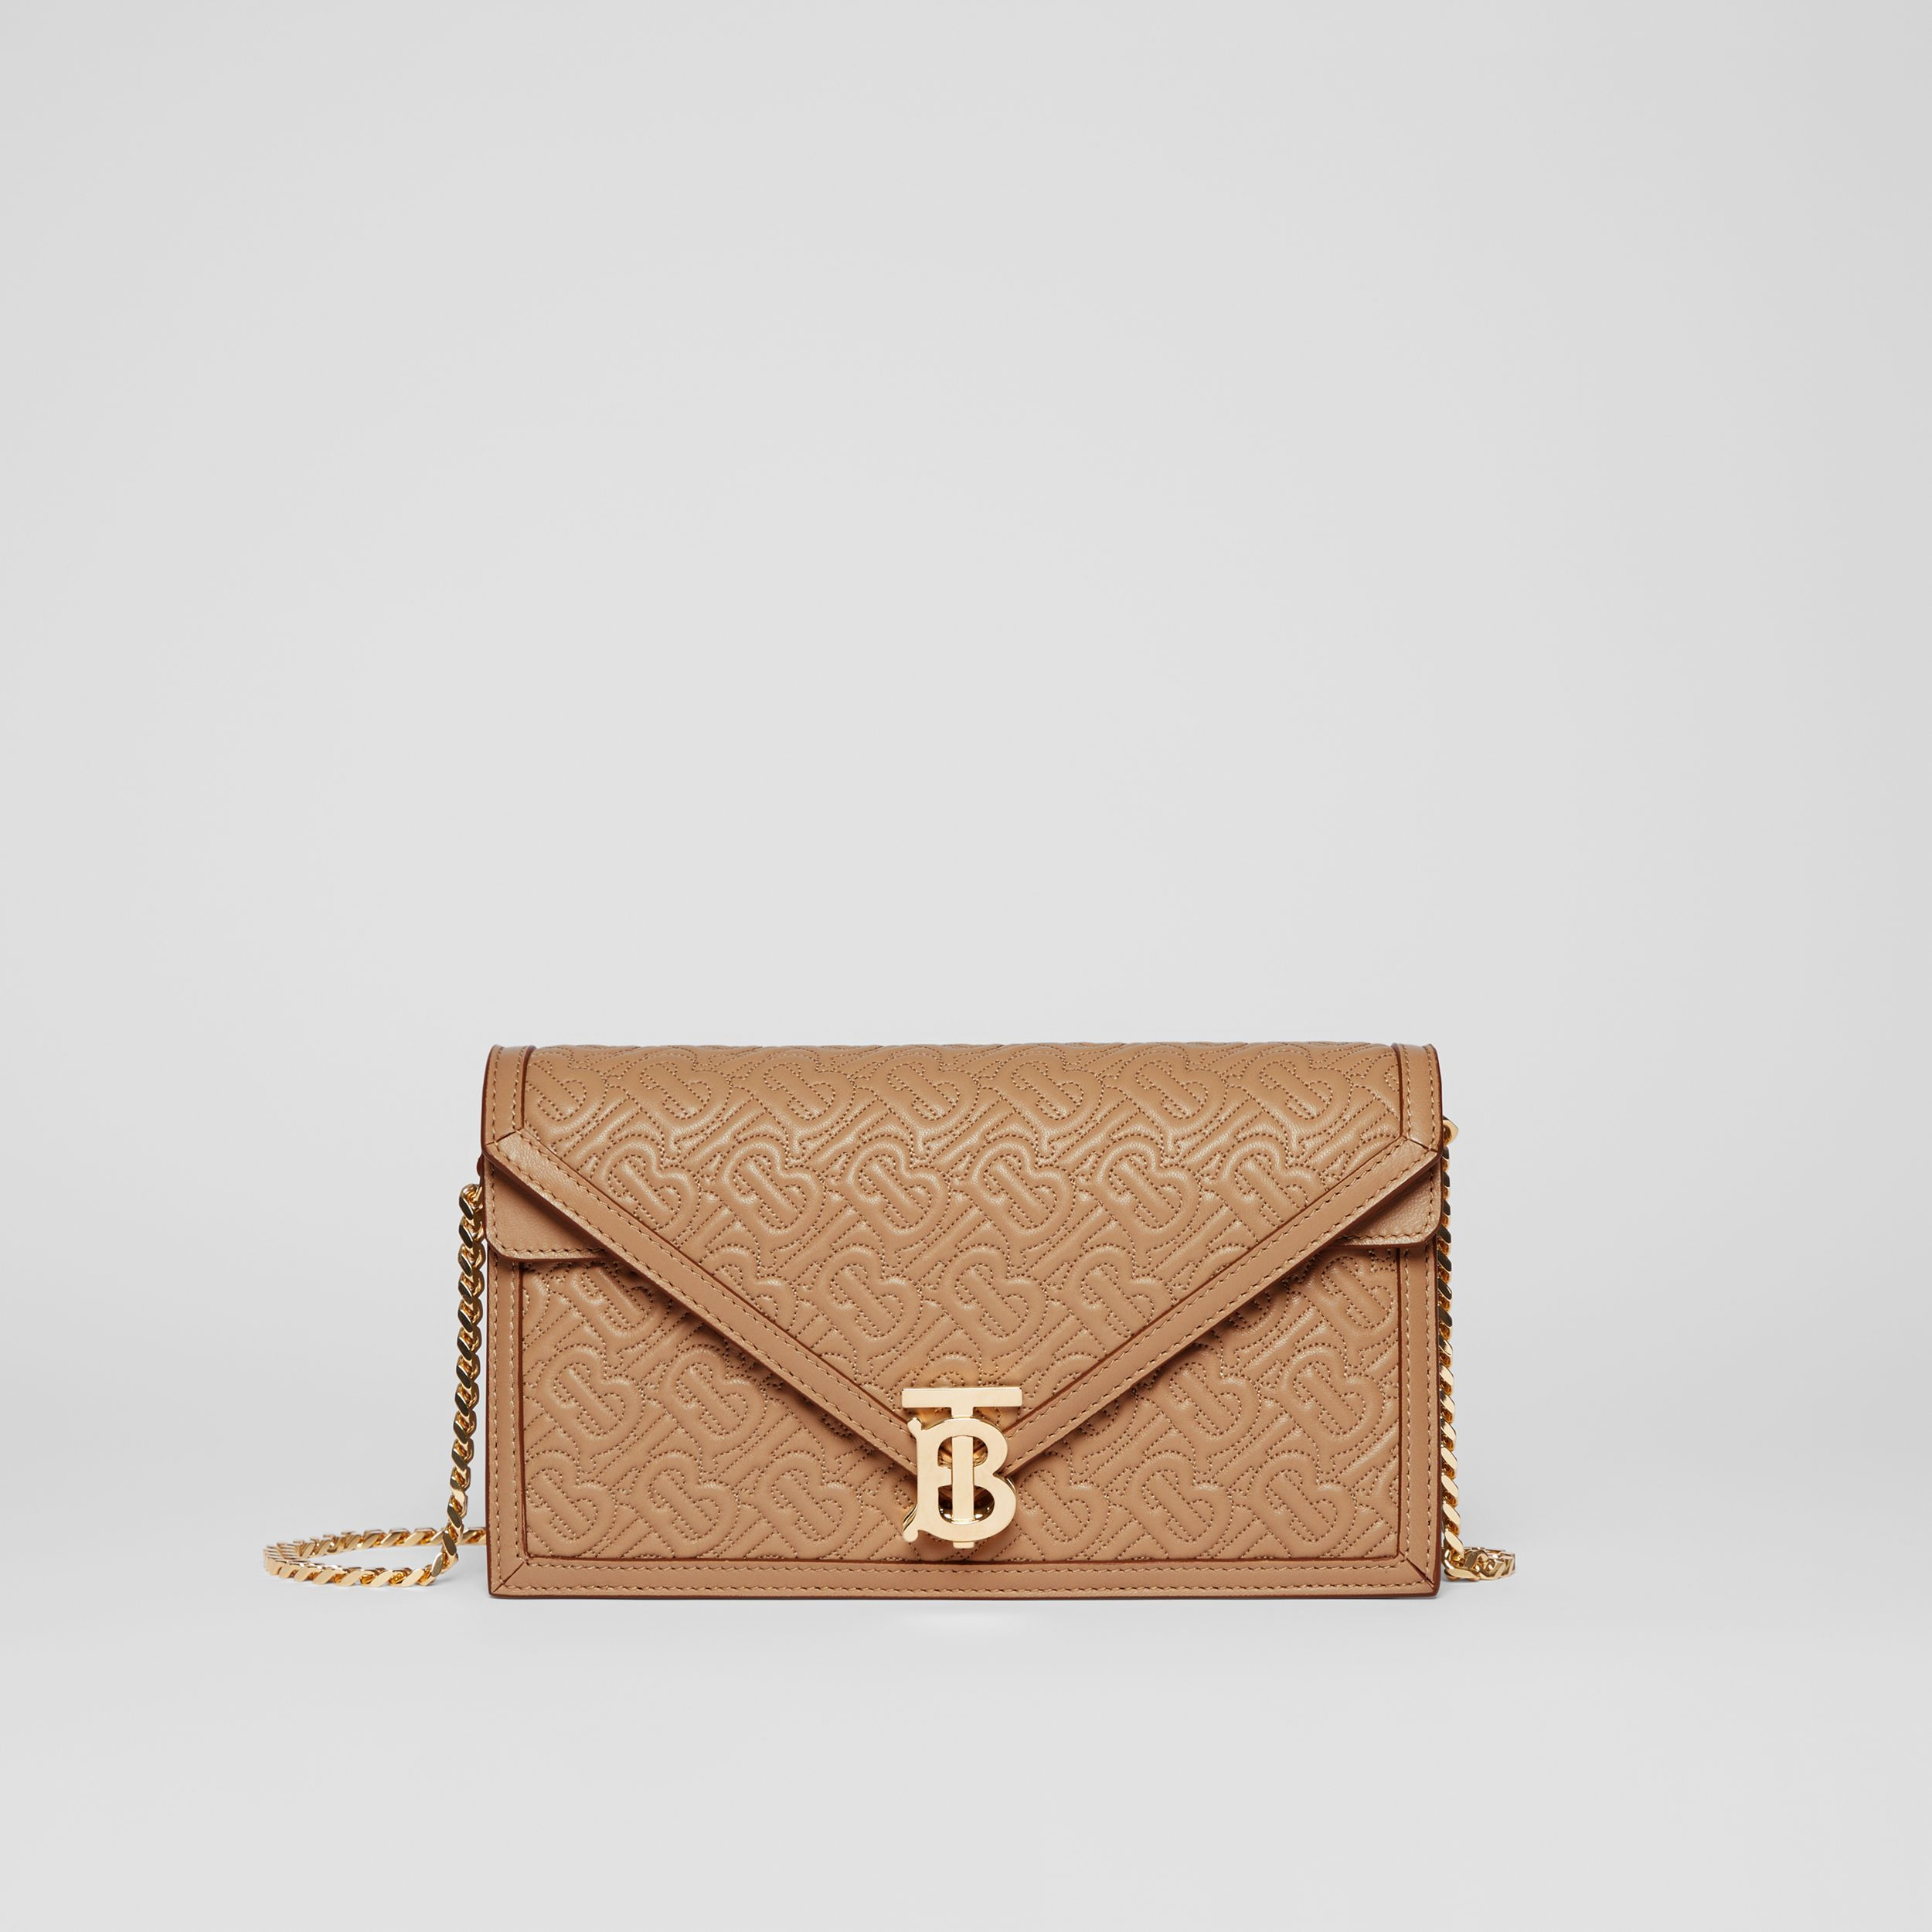 Small Quilted Monogram TB Envelope Clutch in Honey - Women | Burberry - 1